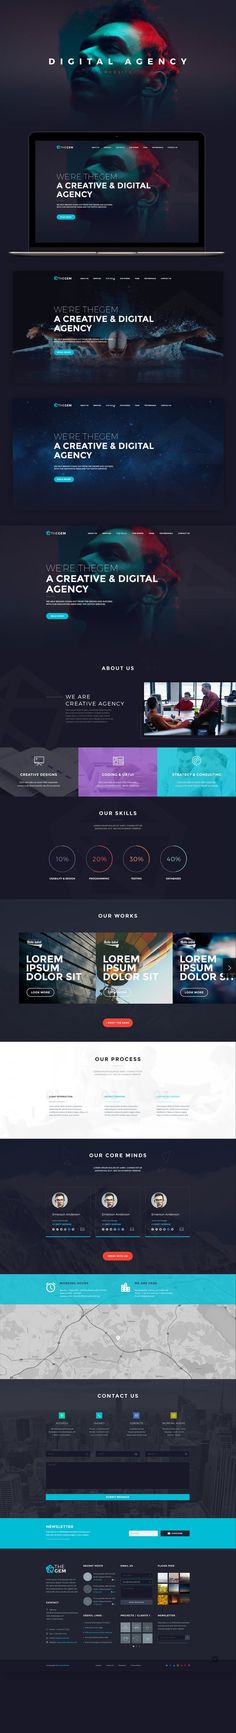 Fivestar Branding Agency – Business Branding and Web Design for Small Business Owners Webdesign Inspiration, Website Design Inspiration, Web Design Agency, App Design, Branding Design, Interface Design, Responsive Layout, User Experience Design, Ui Web